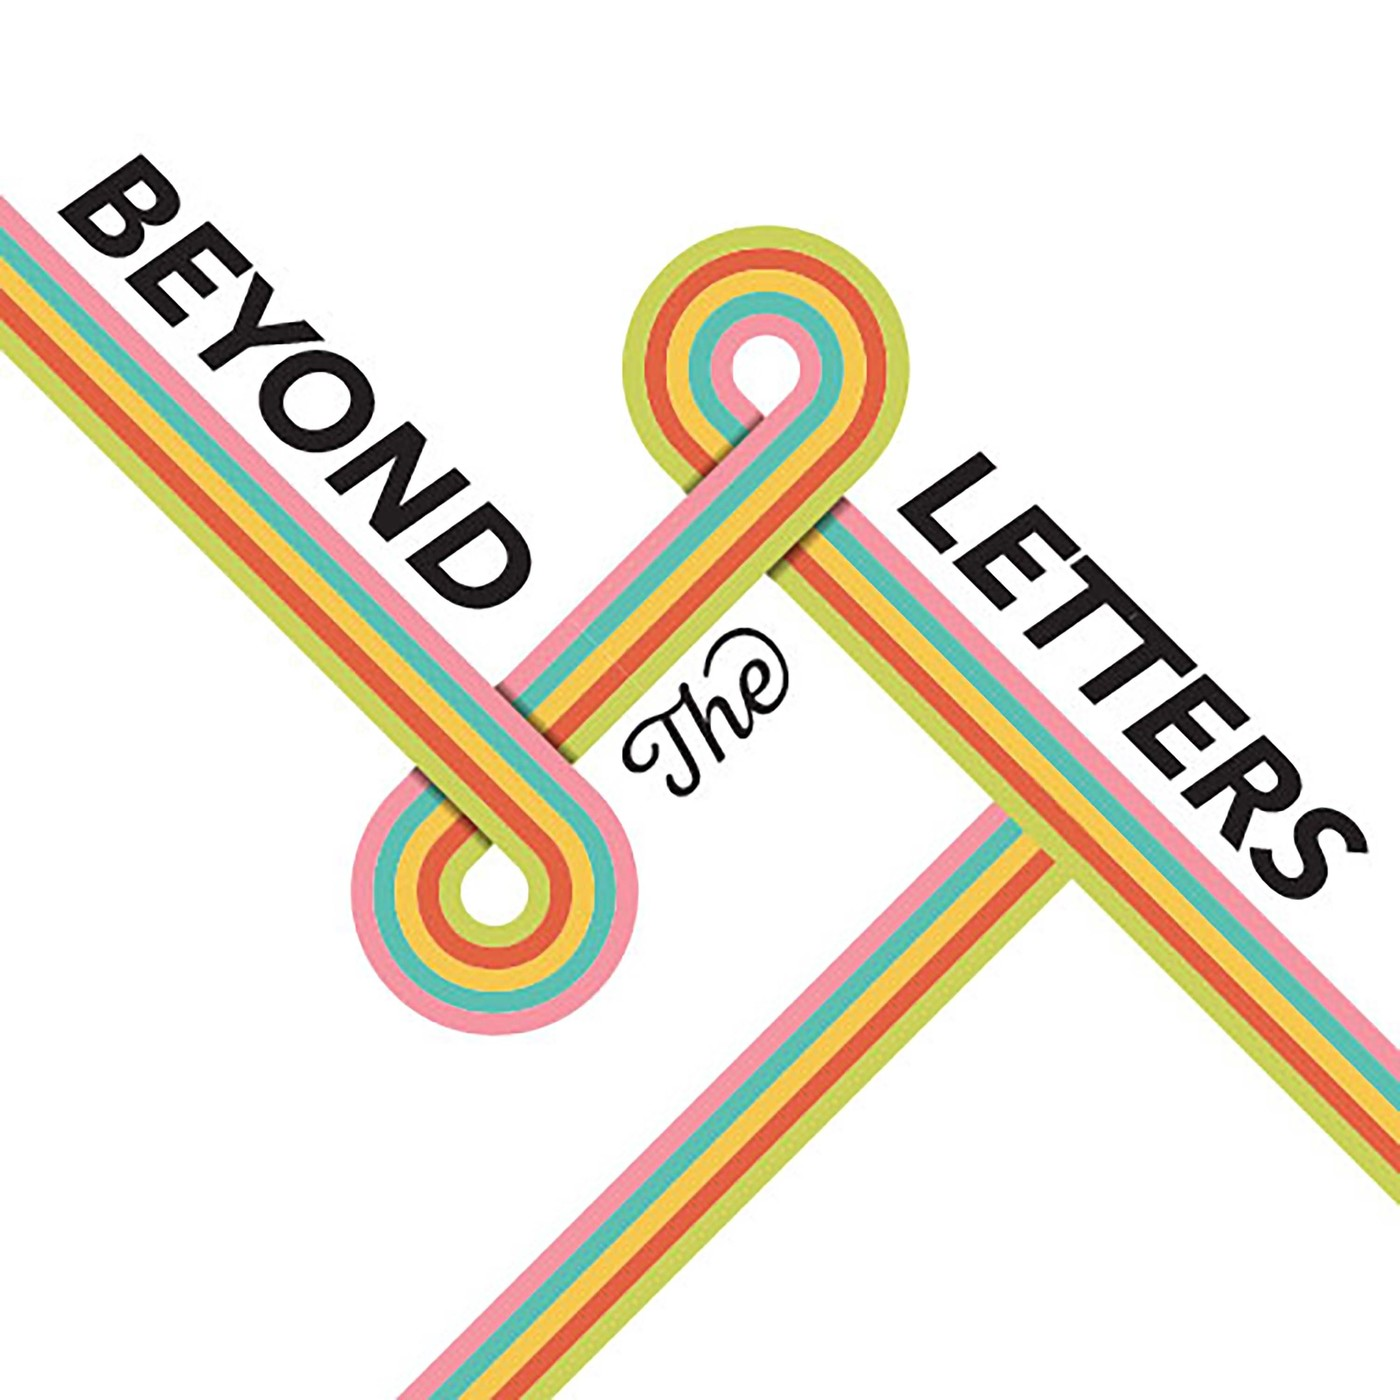 Beyond the Letters: Being a Stronger Ally with shea martin